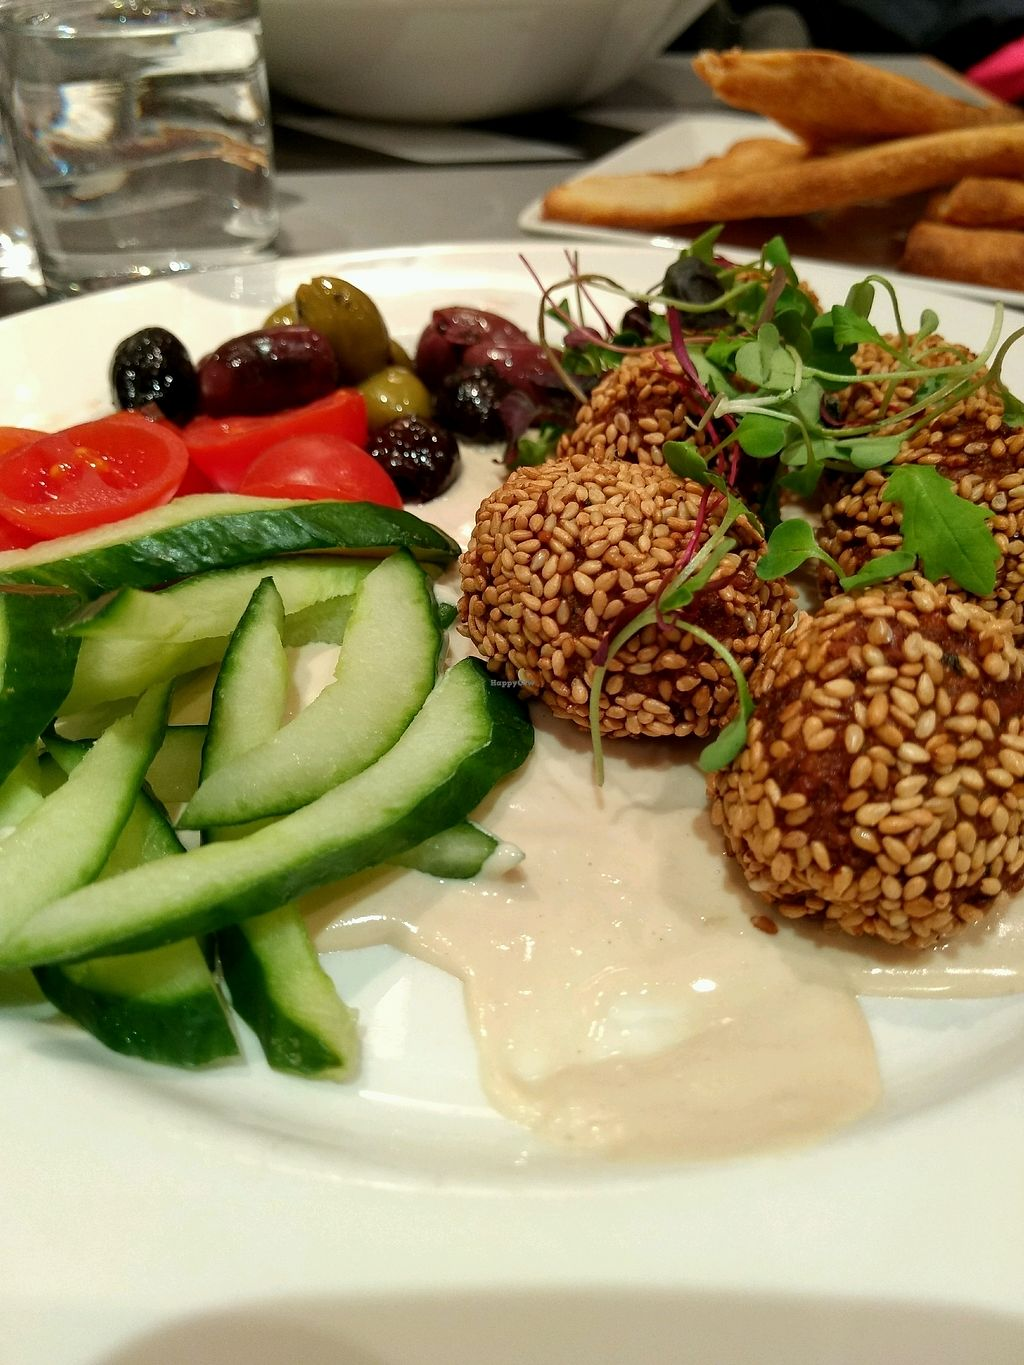 """Photo of Filmhouse Cinema Cafe Bar  by <a href=""""/members/profile/craigmc"""">craigmc</a> <br/>falafel meal <br/> April 1, 2018  - <a href='/contact/abuse/image/42360/379344'>Report</a>"""